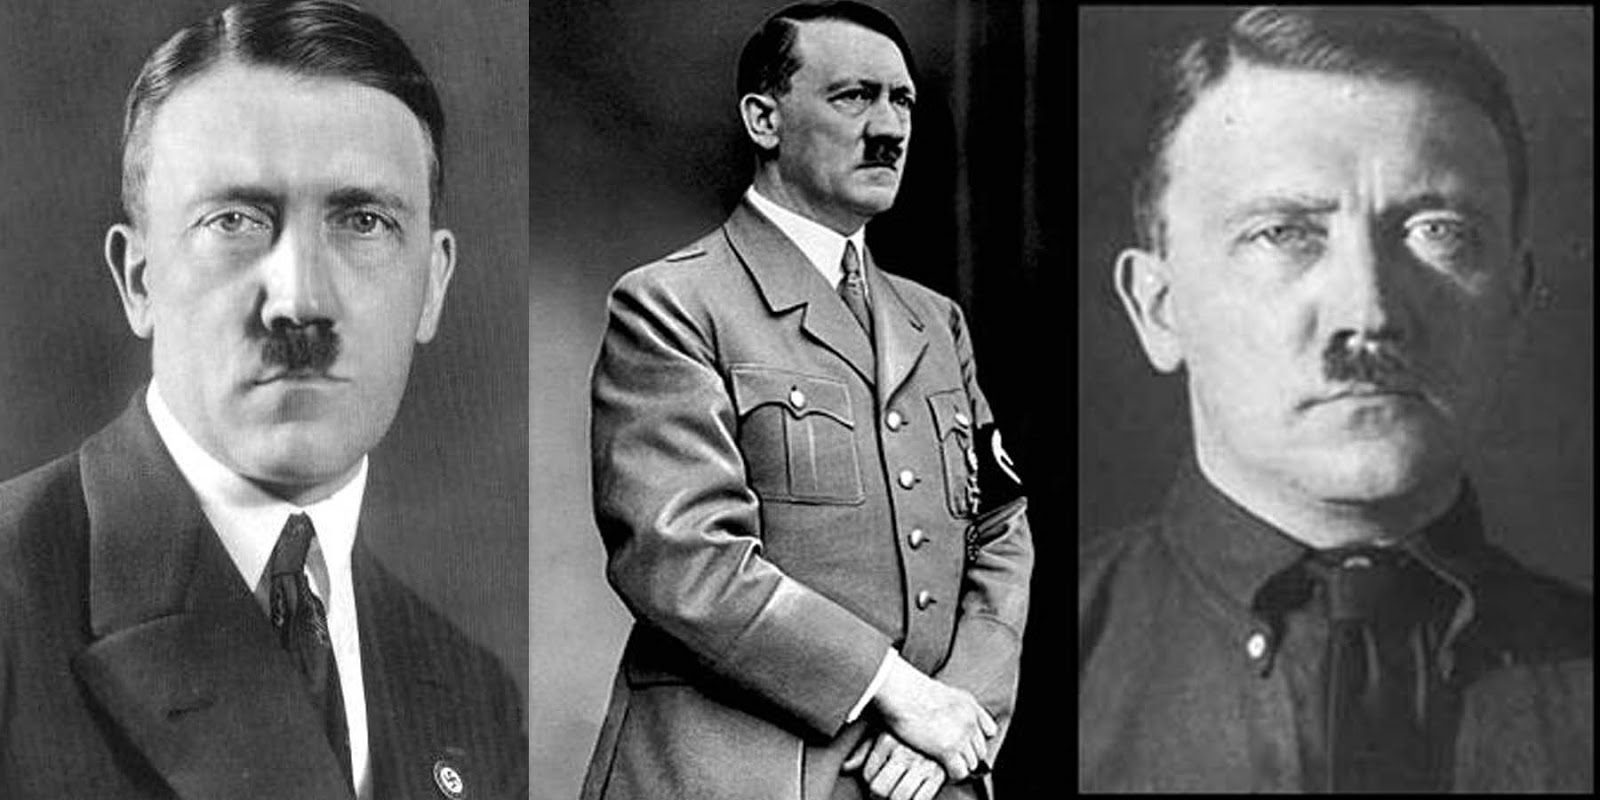 life history of adolf hitler Adolf hitler: adolf hitler, leader of the nazi party (from 1920/21) and chancellor and fuhrer of germany (1933–45) he was the leader of germany during that country's participation in world war ii, and he oversaw the nazi party's implementation of the holocaust, which resulted in the deaths of millions of people.